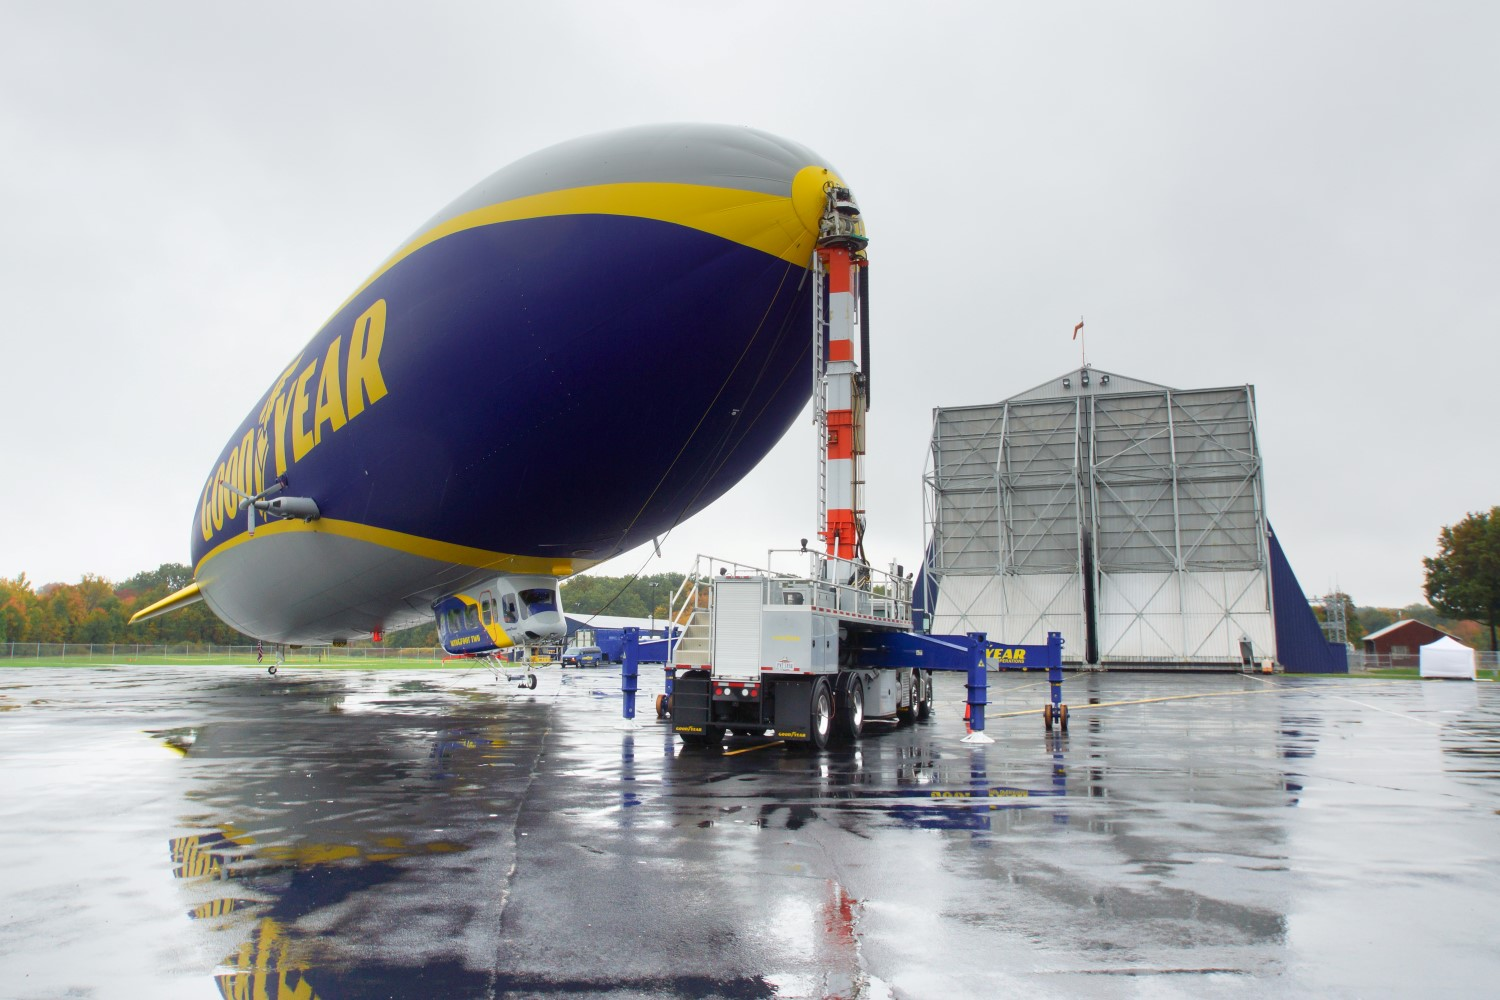 Flying with Goodyear is not like other pilot postions in avation. Image: Steven Drescher